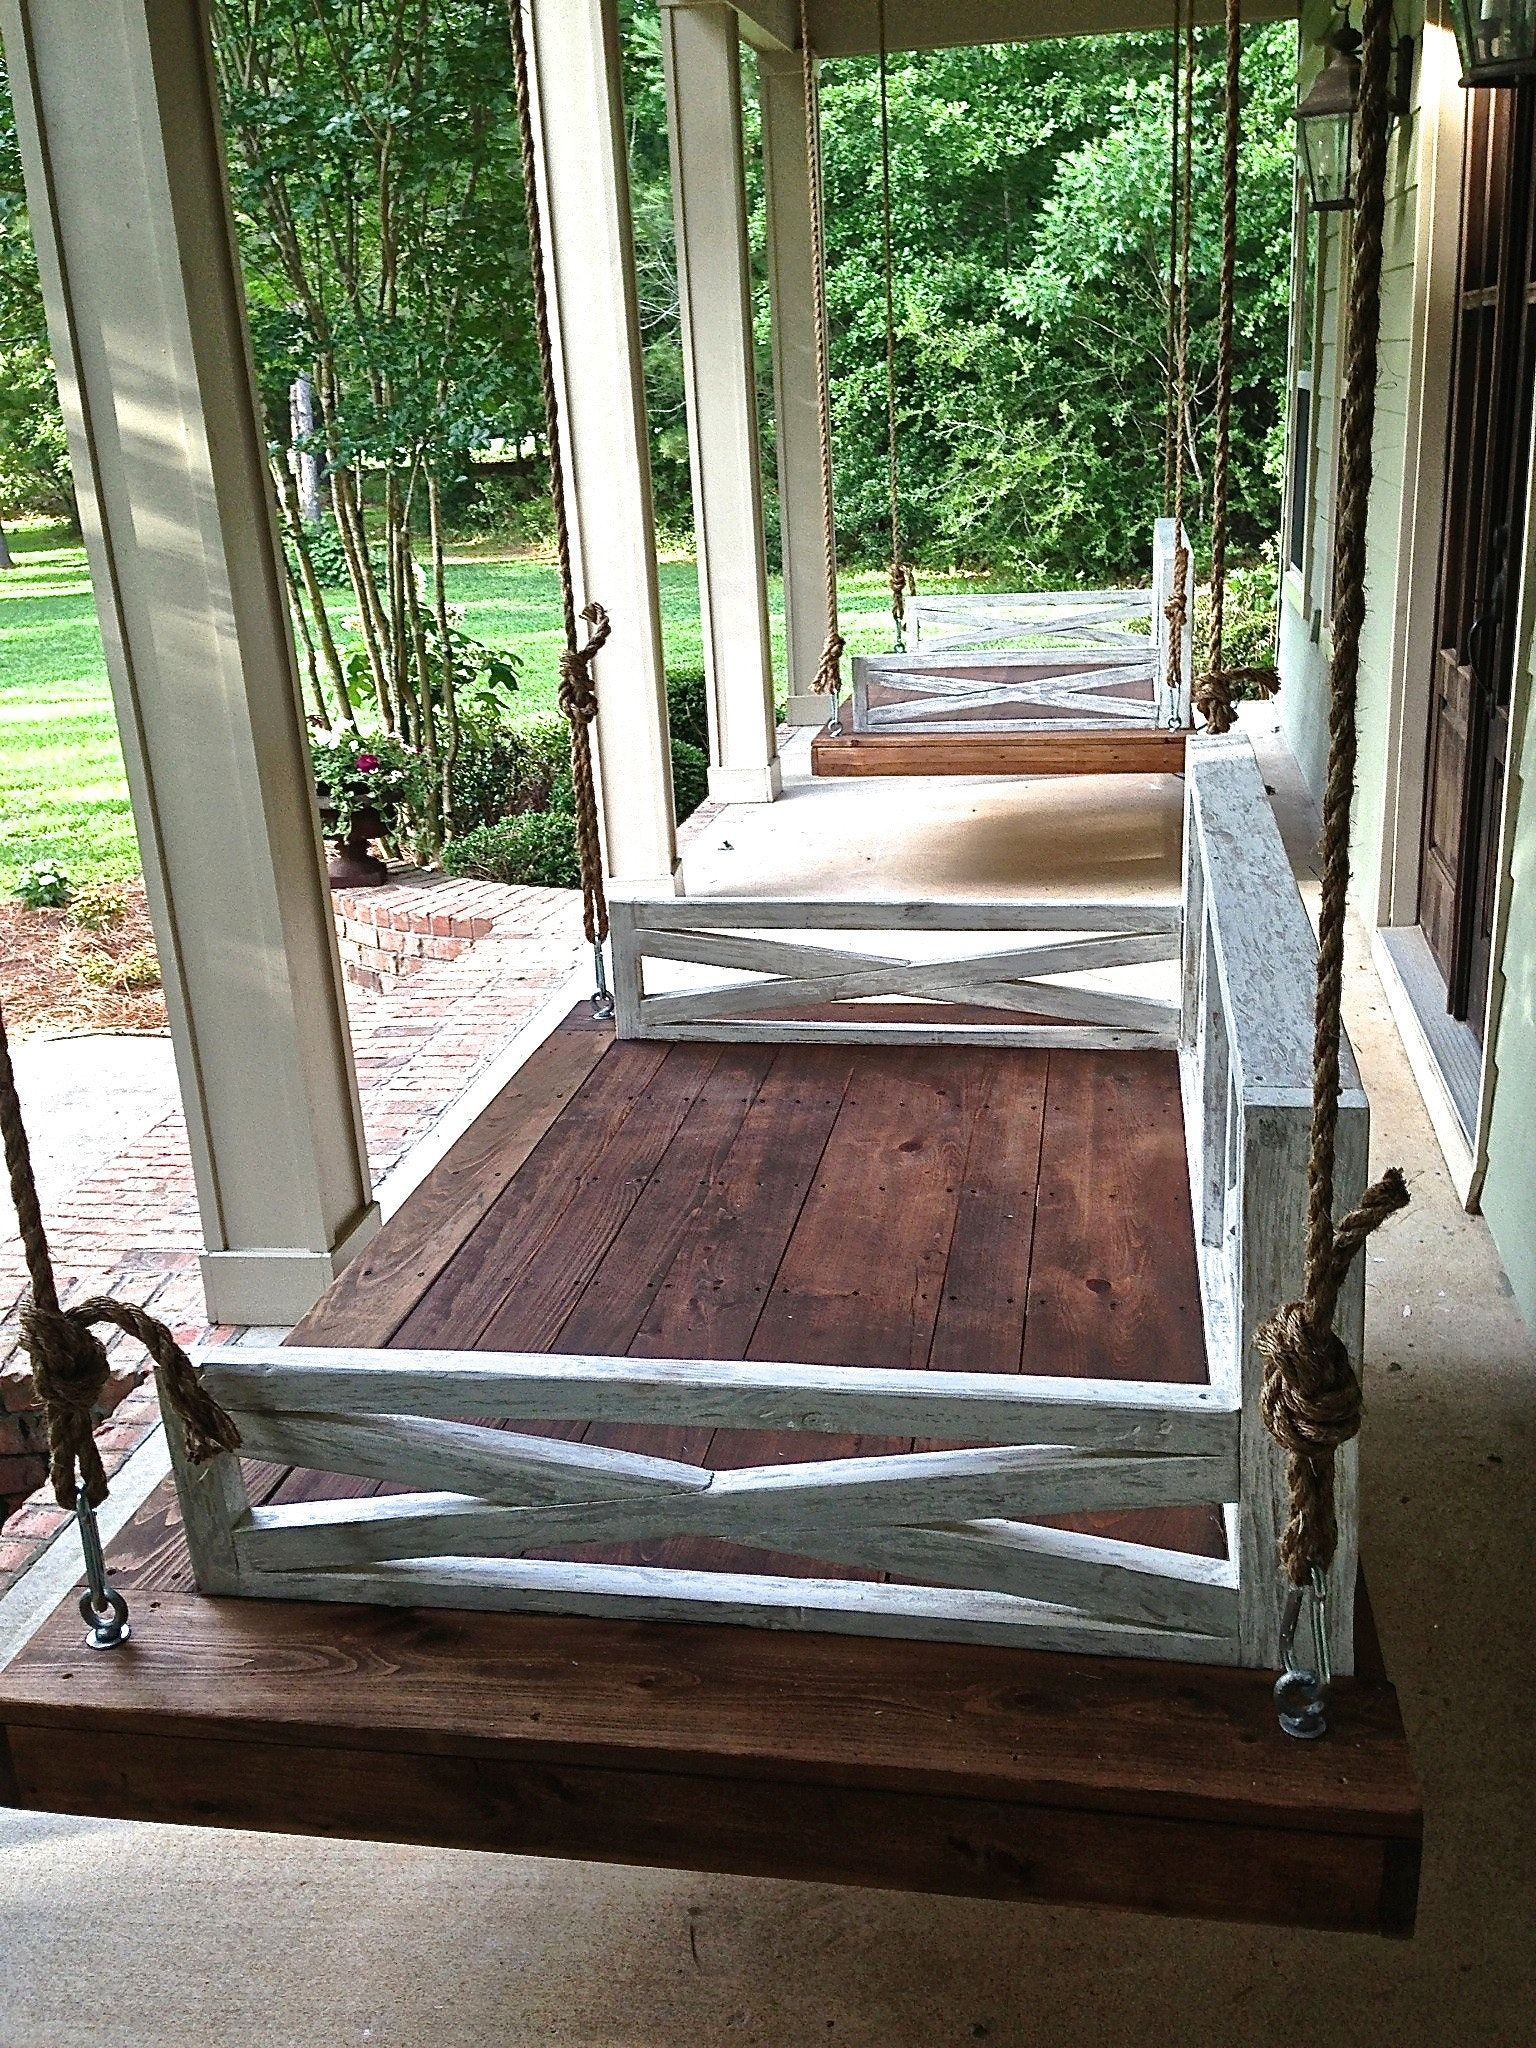 Daybed Porch Swing Hanging Daybed Porch Swing | Outdoor With Regard To Day Bed Porch Swings (View 2 of 25)